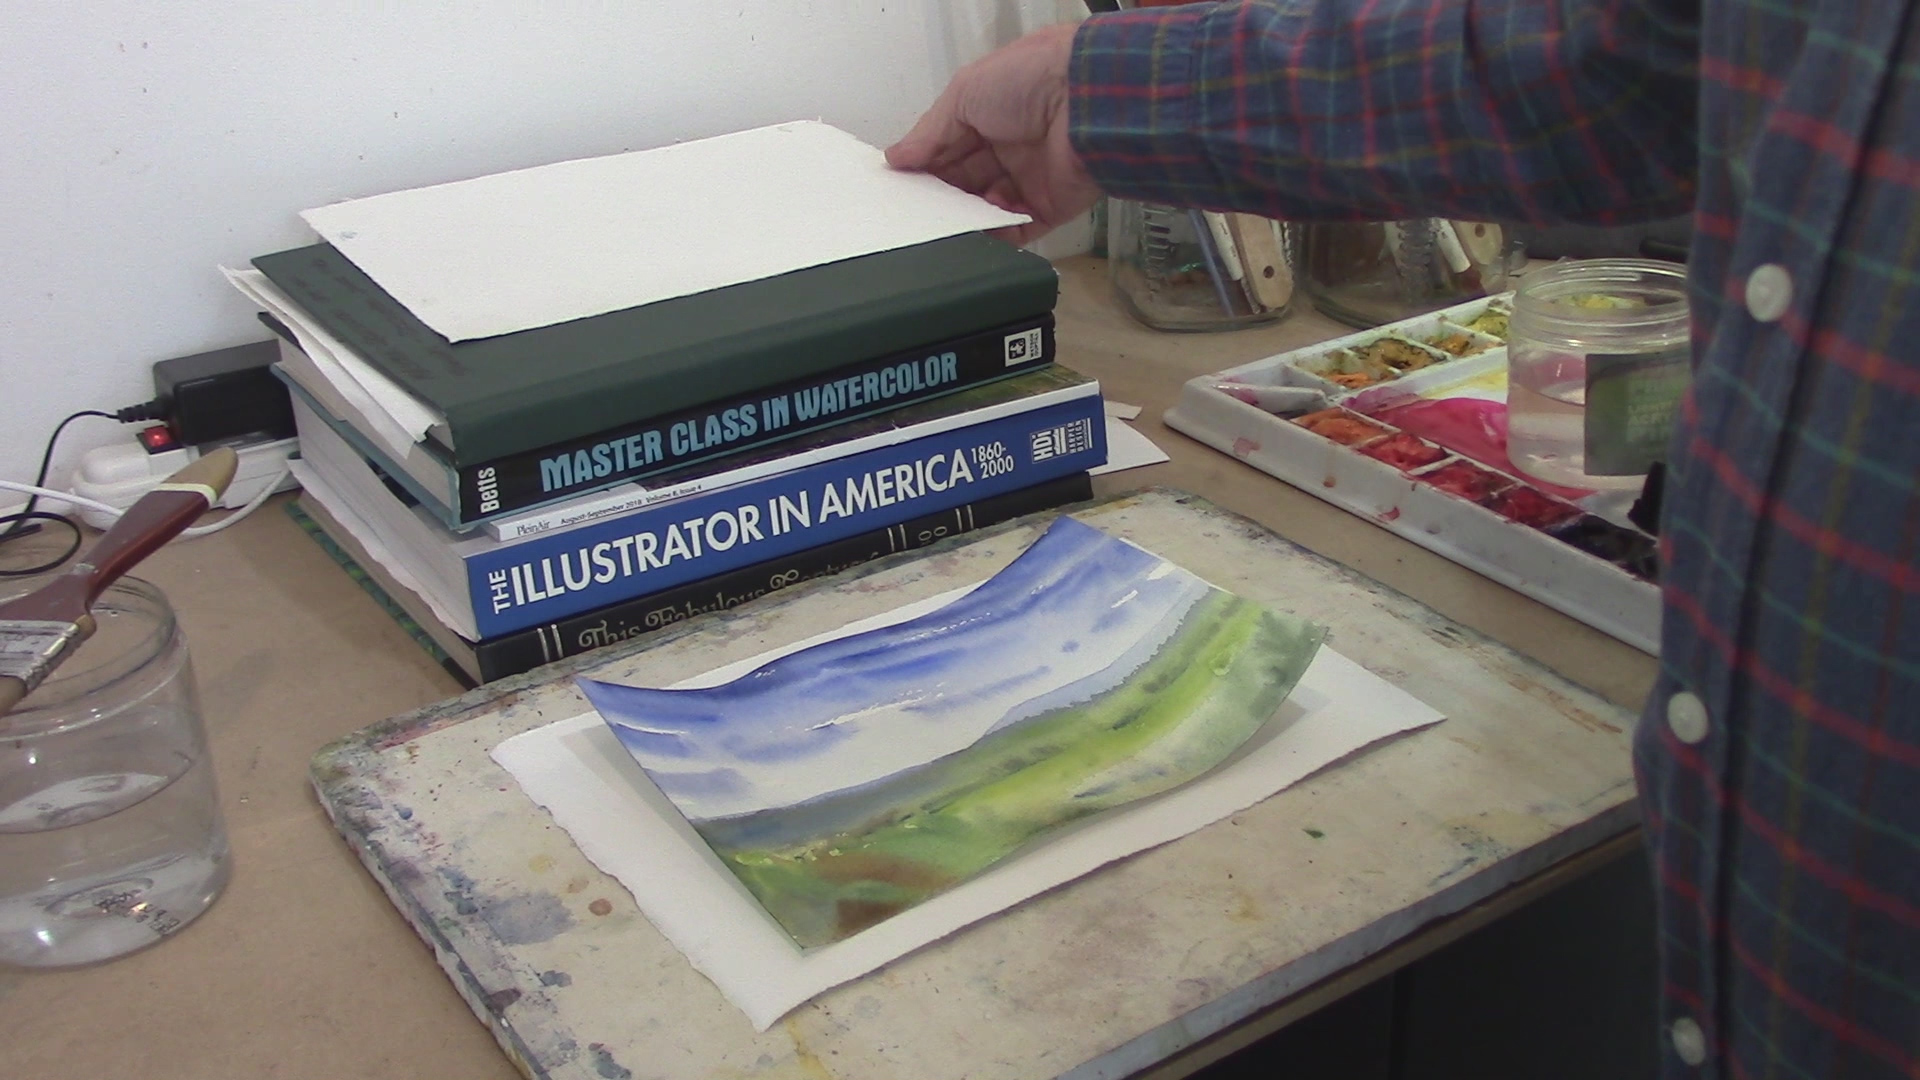 How To Flatten A Buckled Watercolor Painting